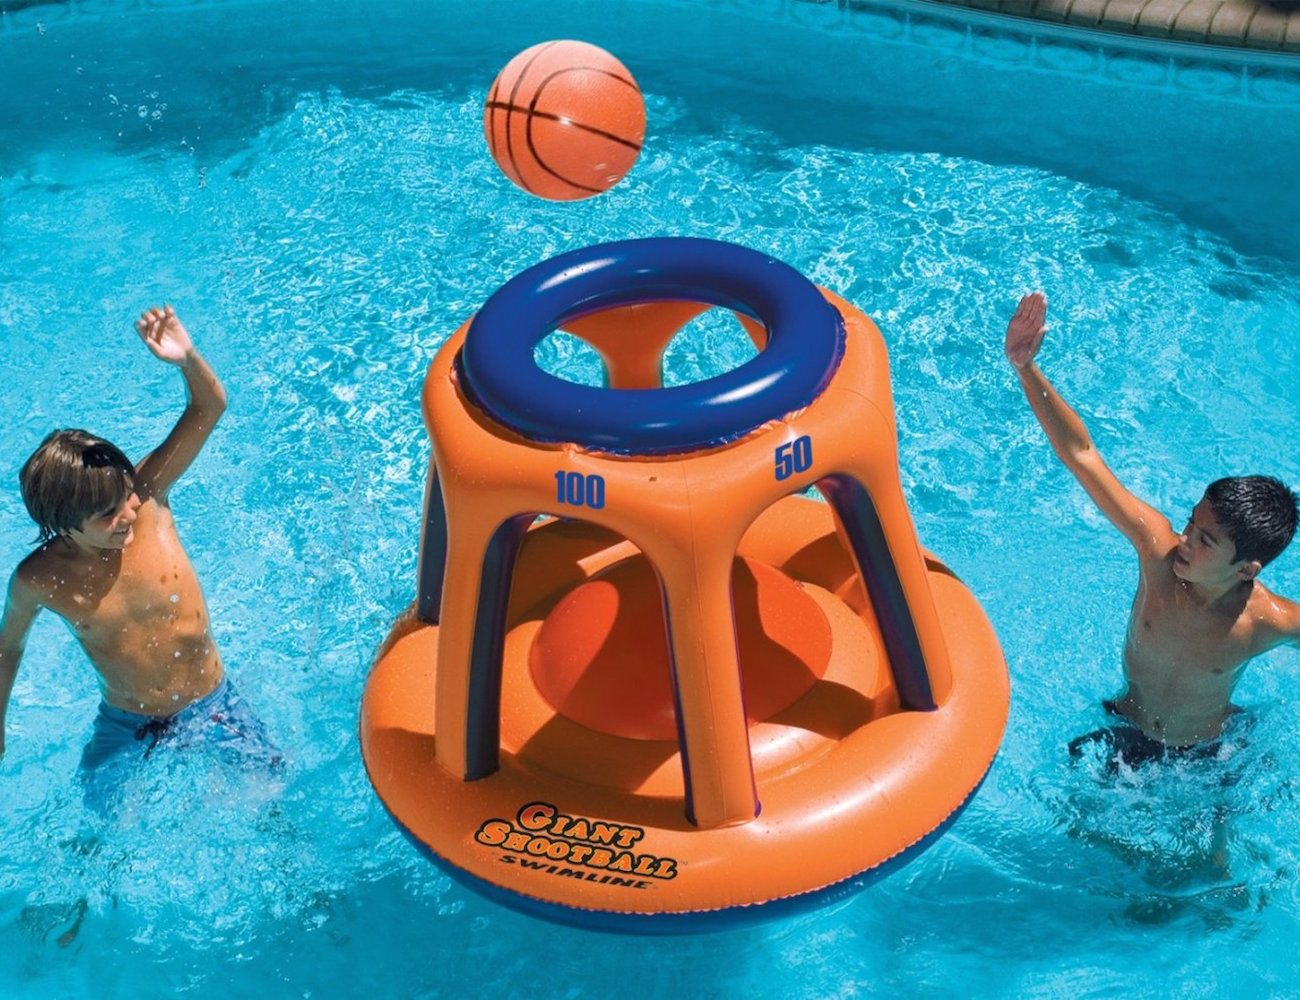 Swimline Giant Shootball Inflatable Pool Toy » Gadget Flow